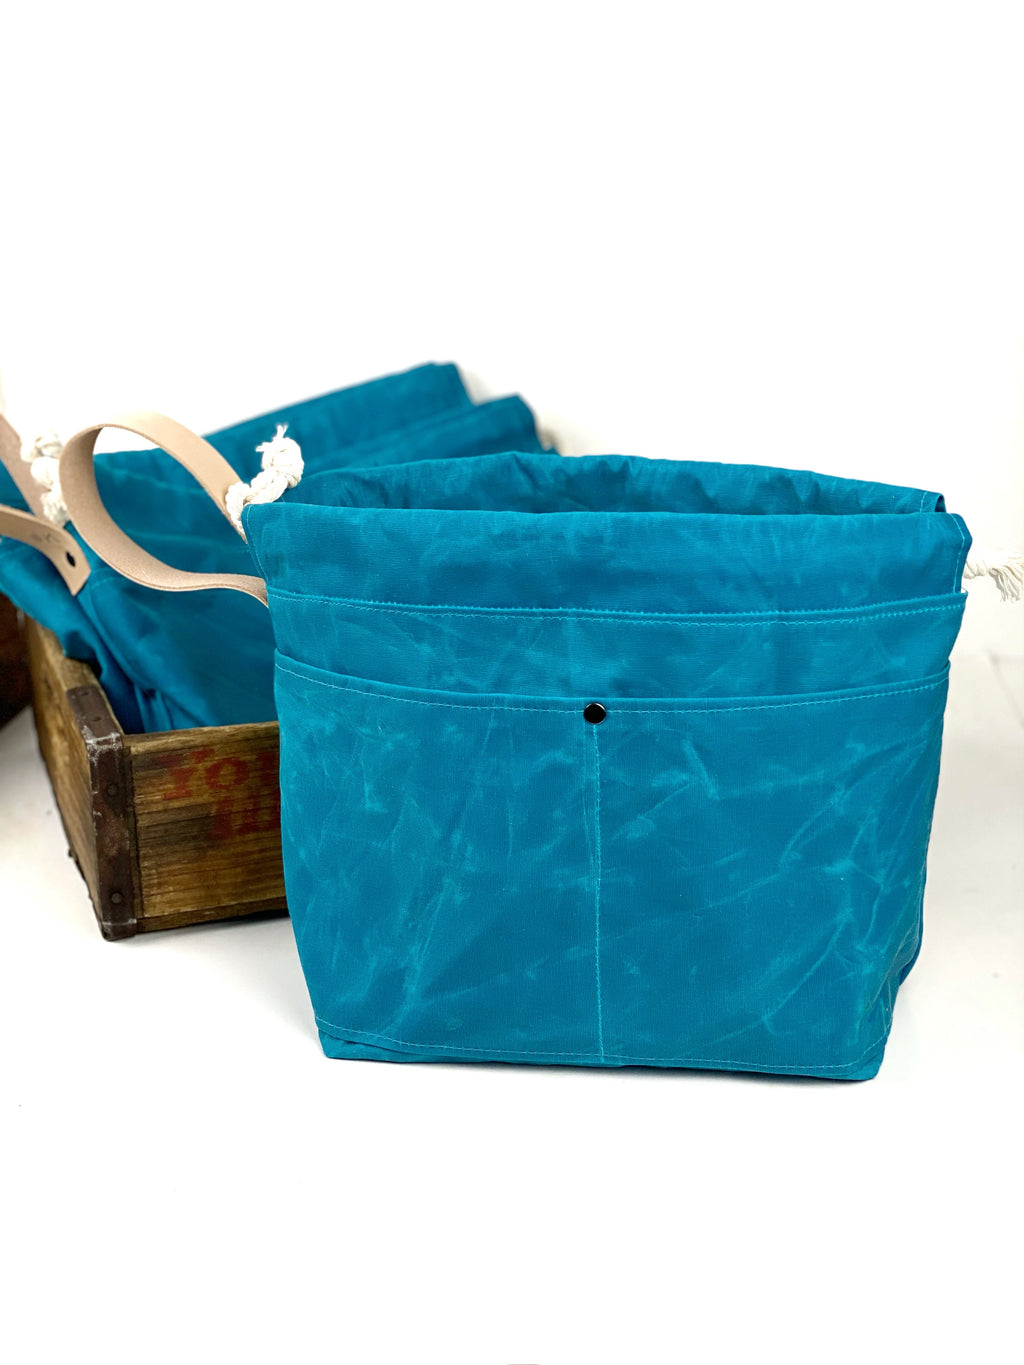 Turquoise Blue Waxed Canvas Project Bag Knit or Crochet Drawstring Tote Strap Flat Bottom